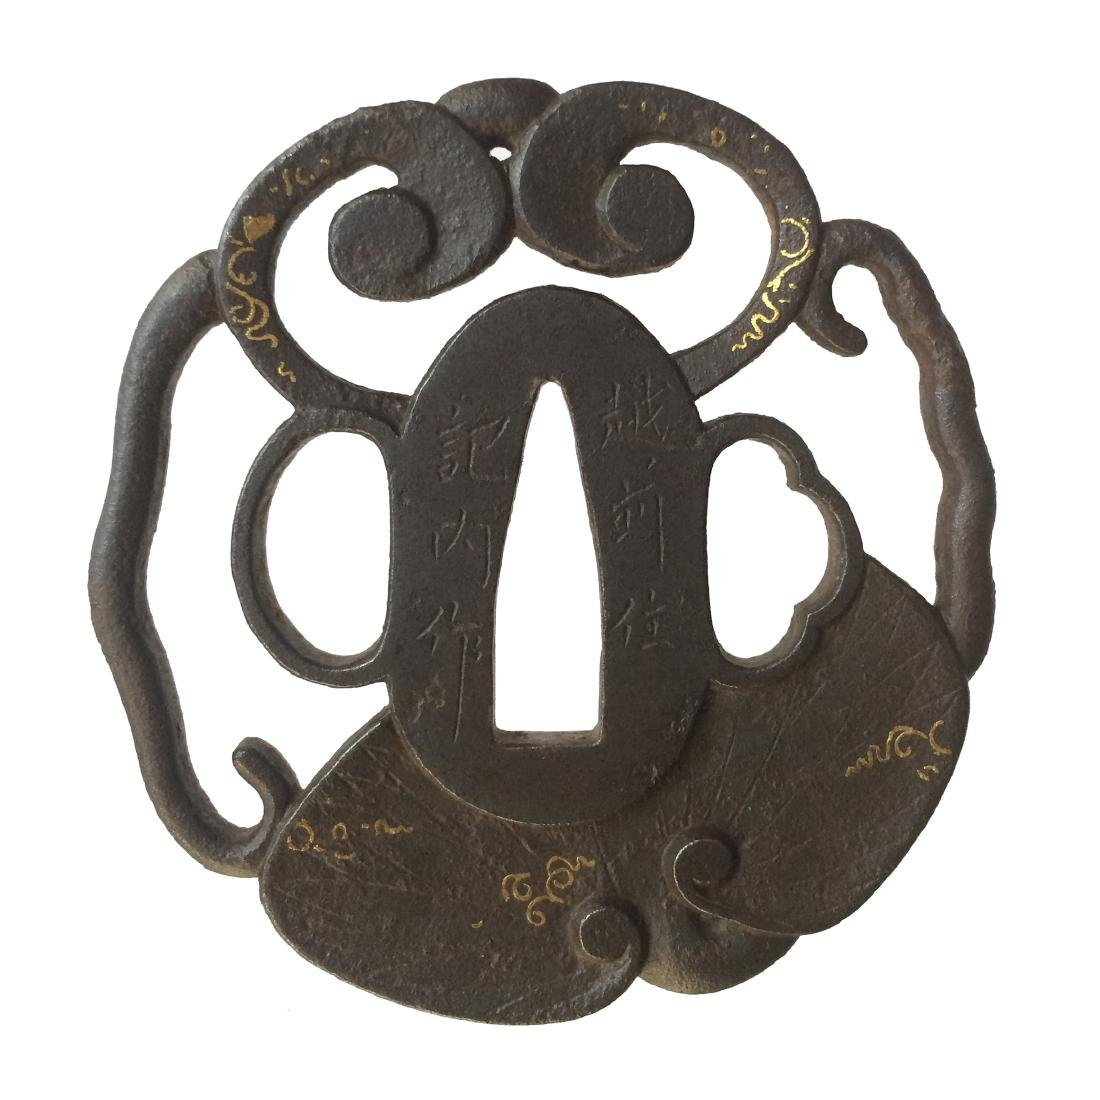 Iron tsuba with aoi leaves and tendrils motif, signed